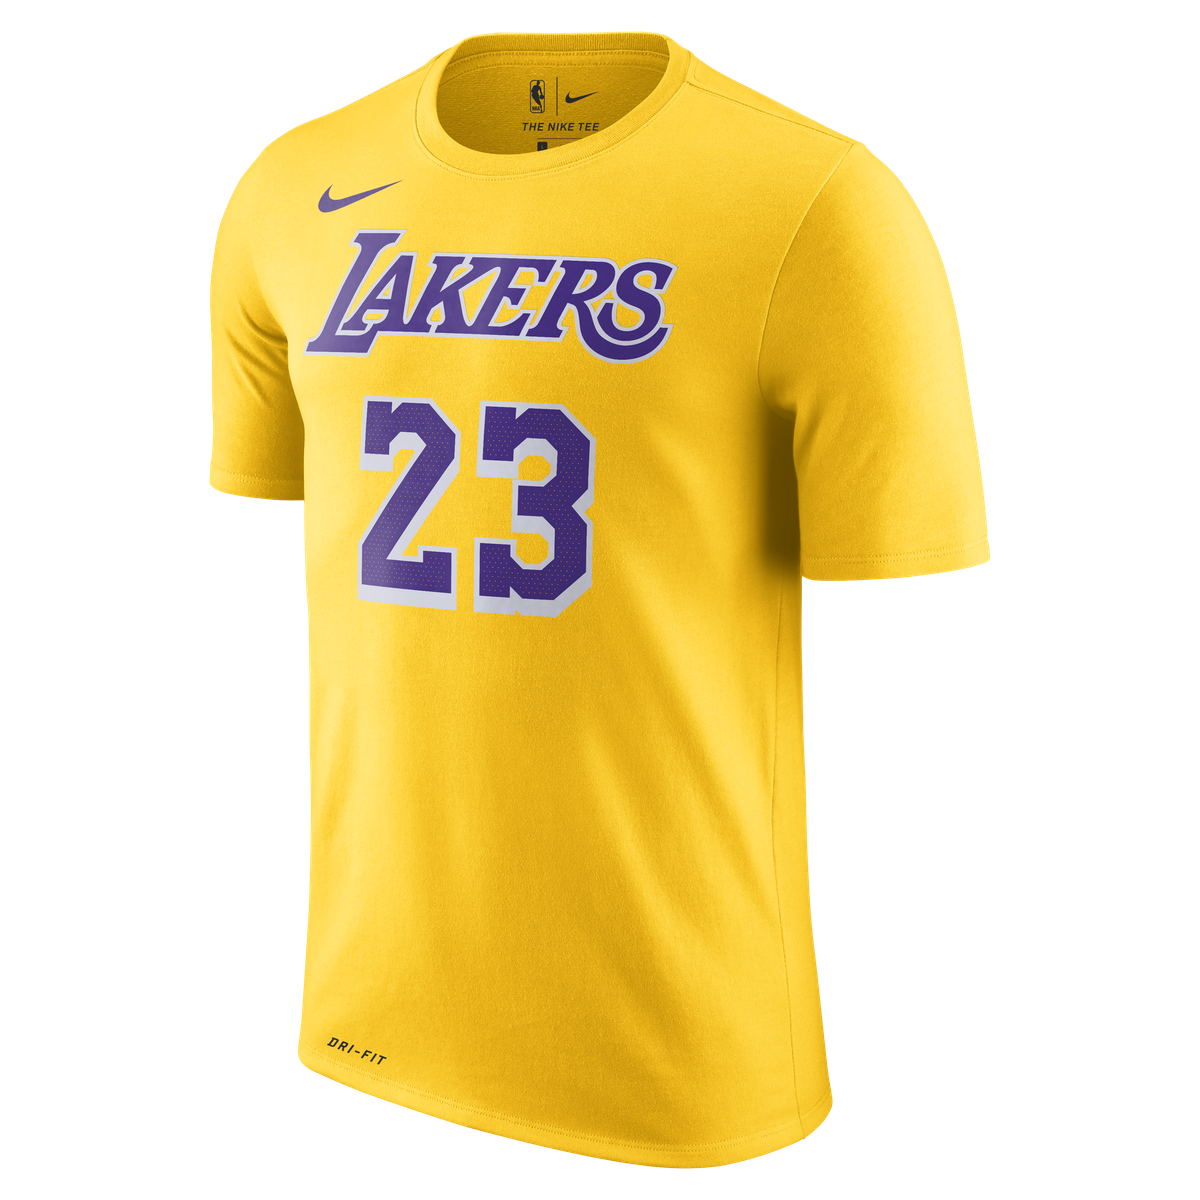 innovative design a5459 88ba9 Where you can get new Los Angeles Lakers and LeBron James ...